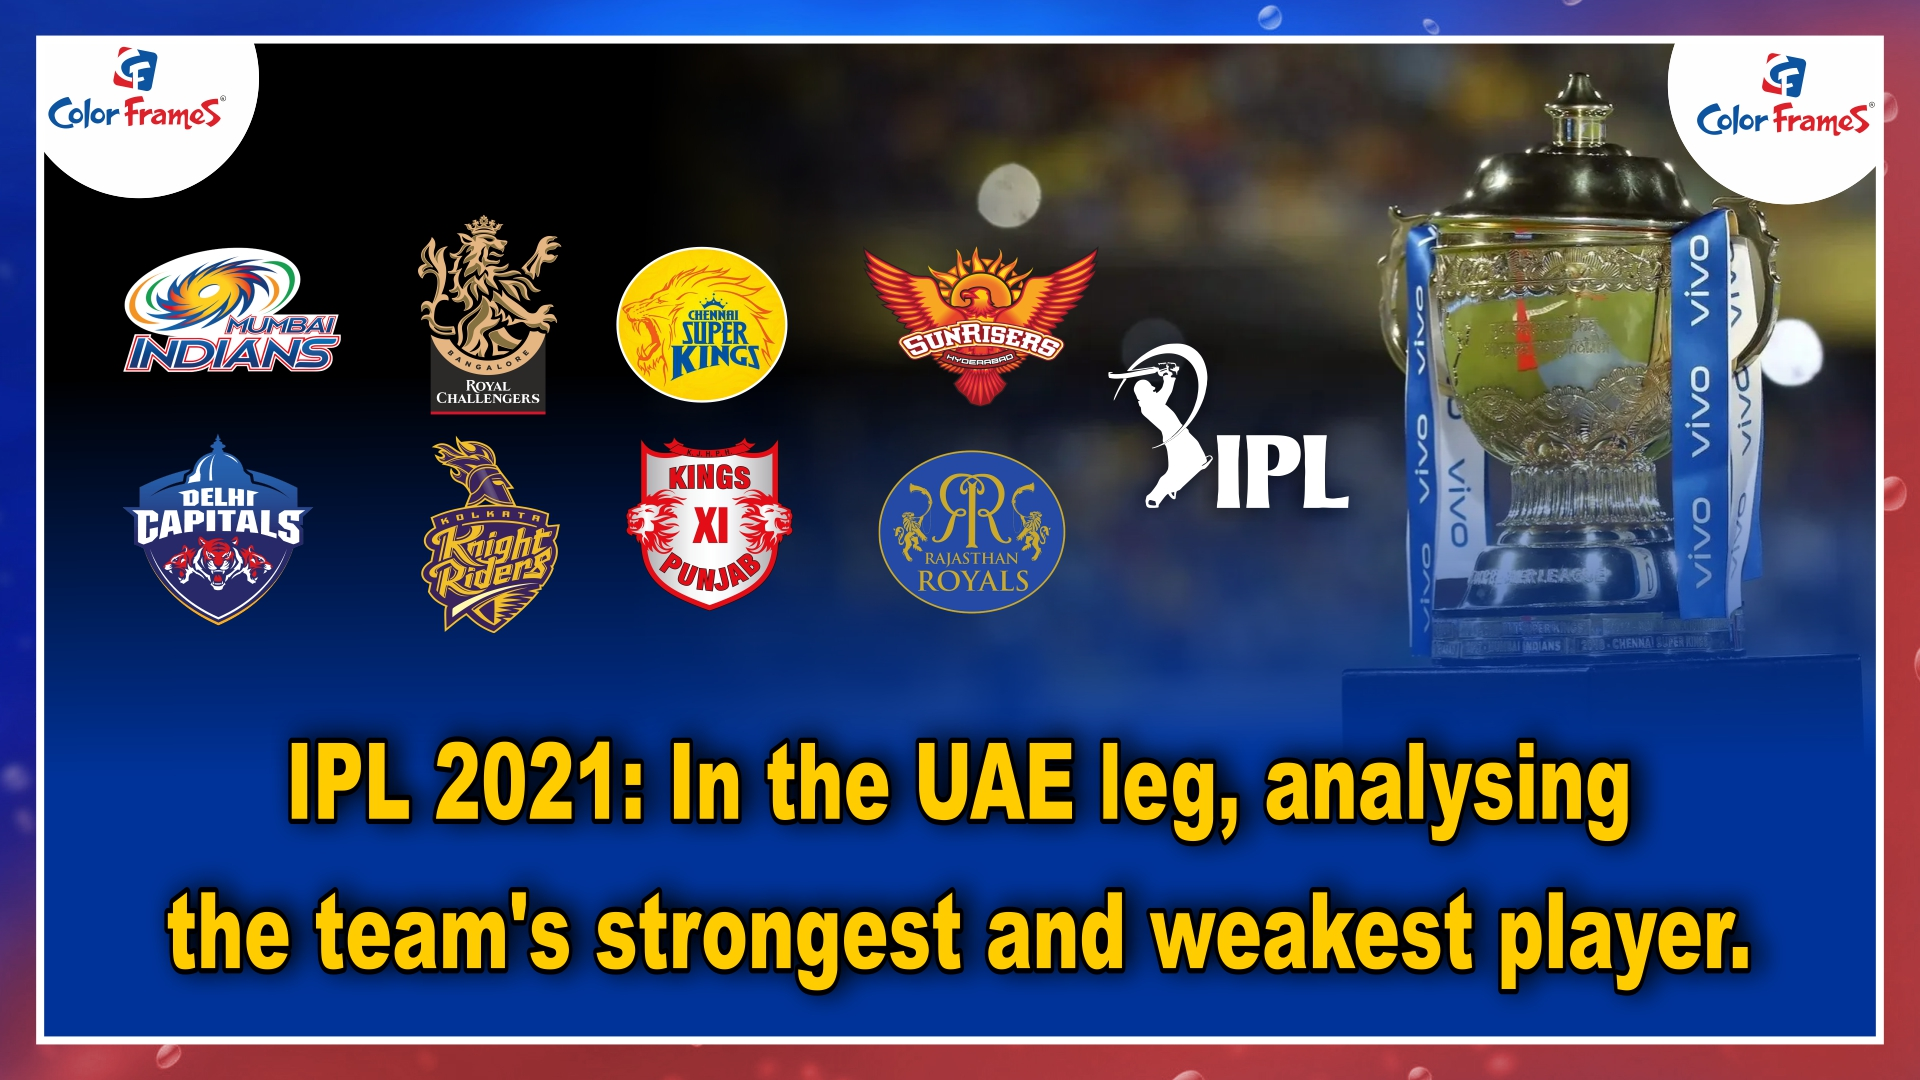 IPL 2021: In the UAE leg, analysing the team's strongest and weakest player.